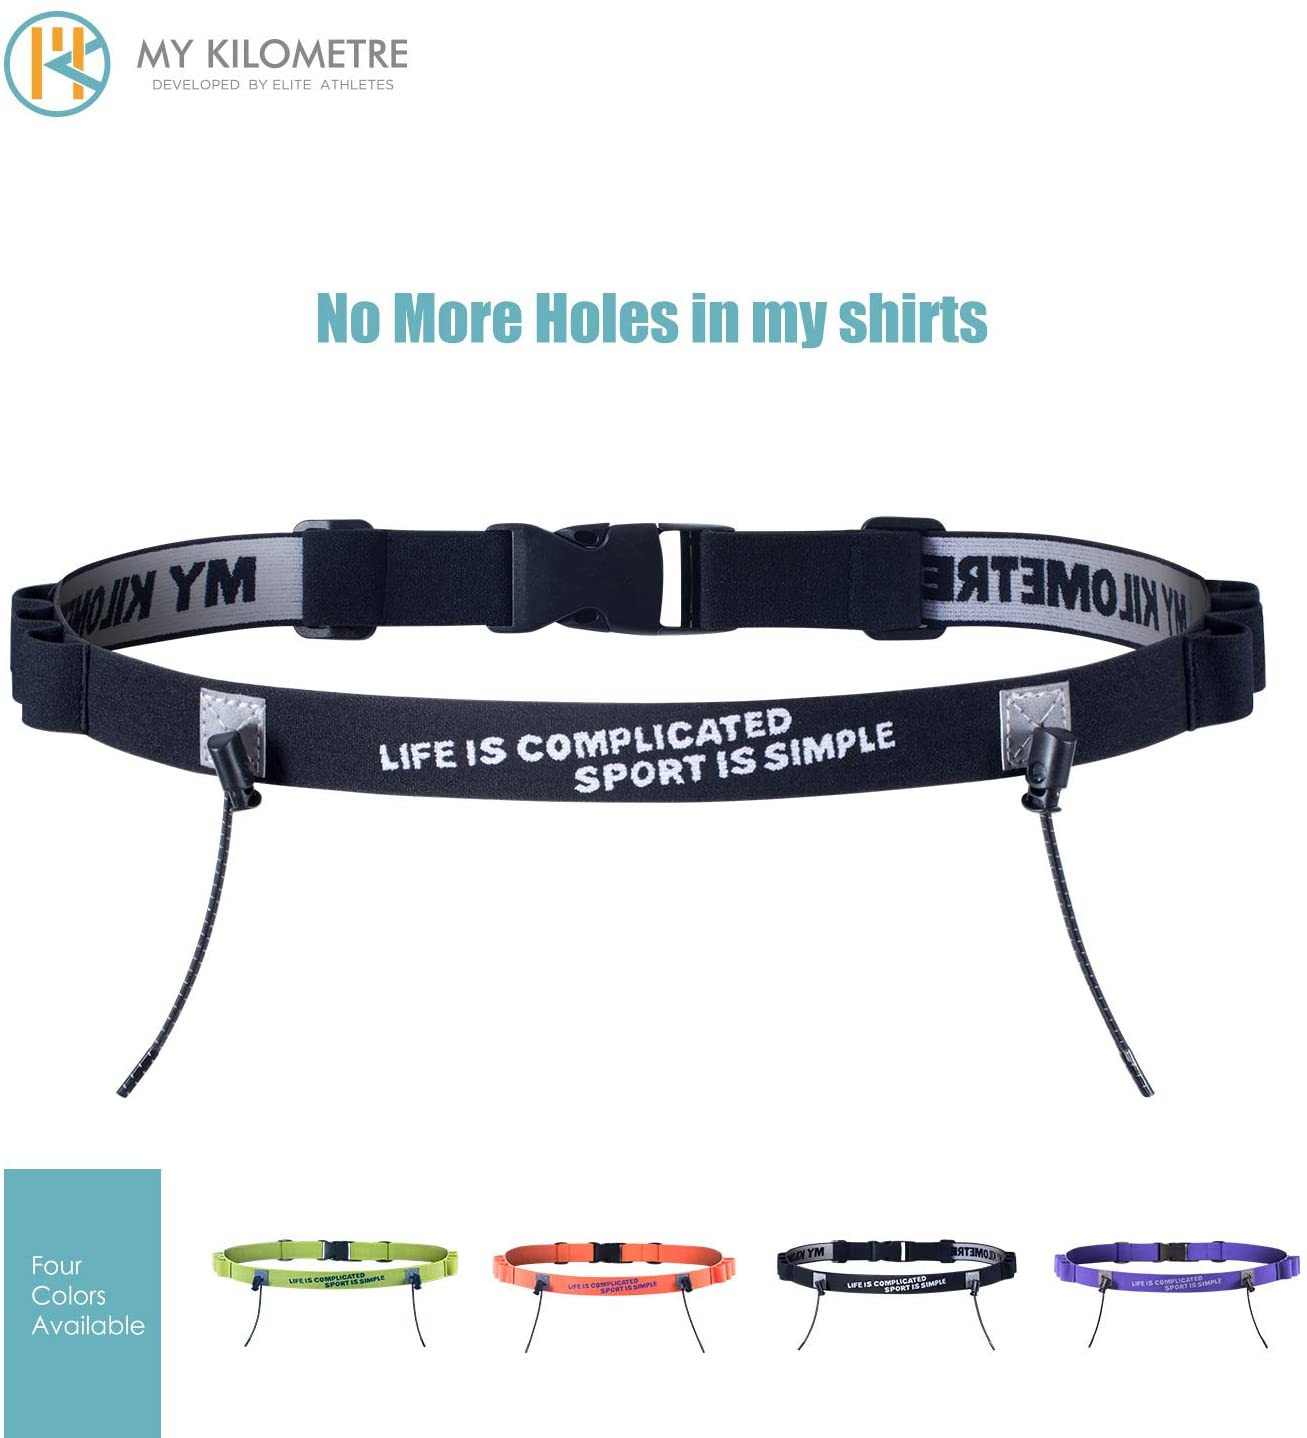 MY KILOMETRE Marathon Triathlon/Runners Running Race BIB Waist Hip Holders Number Card Belt